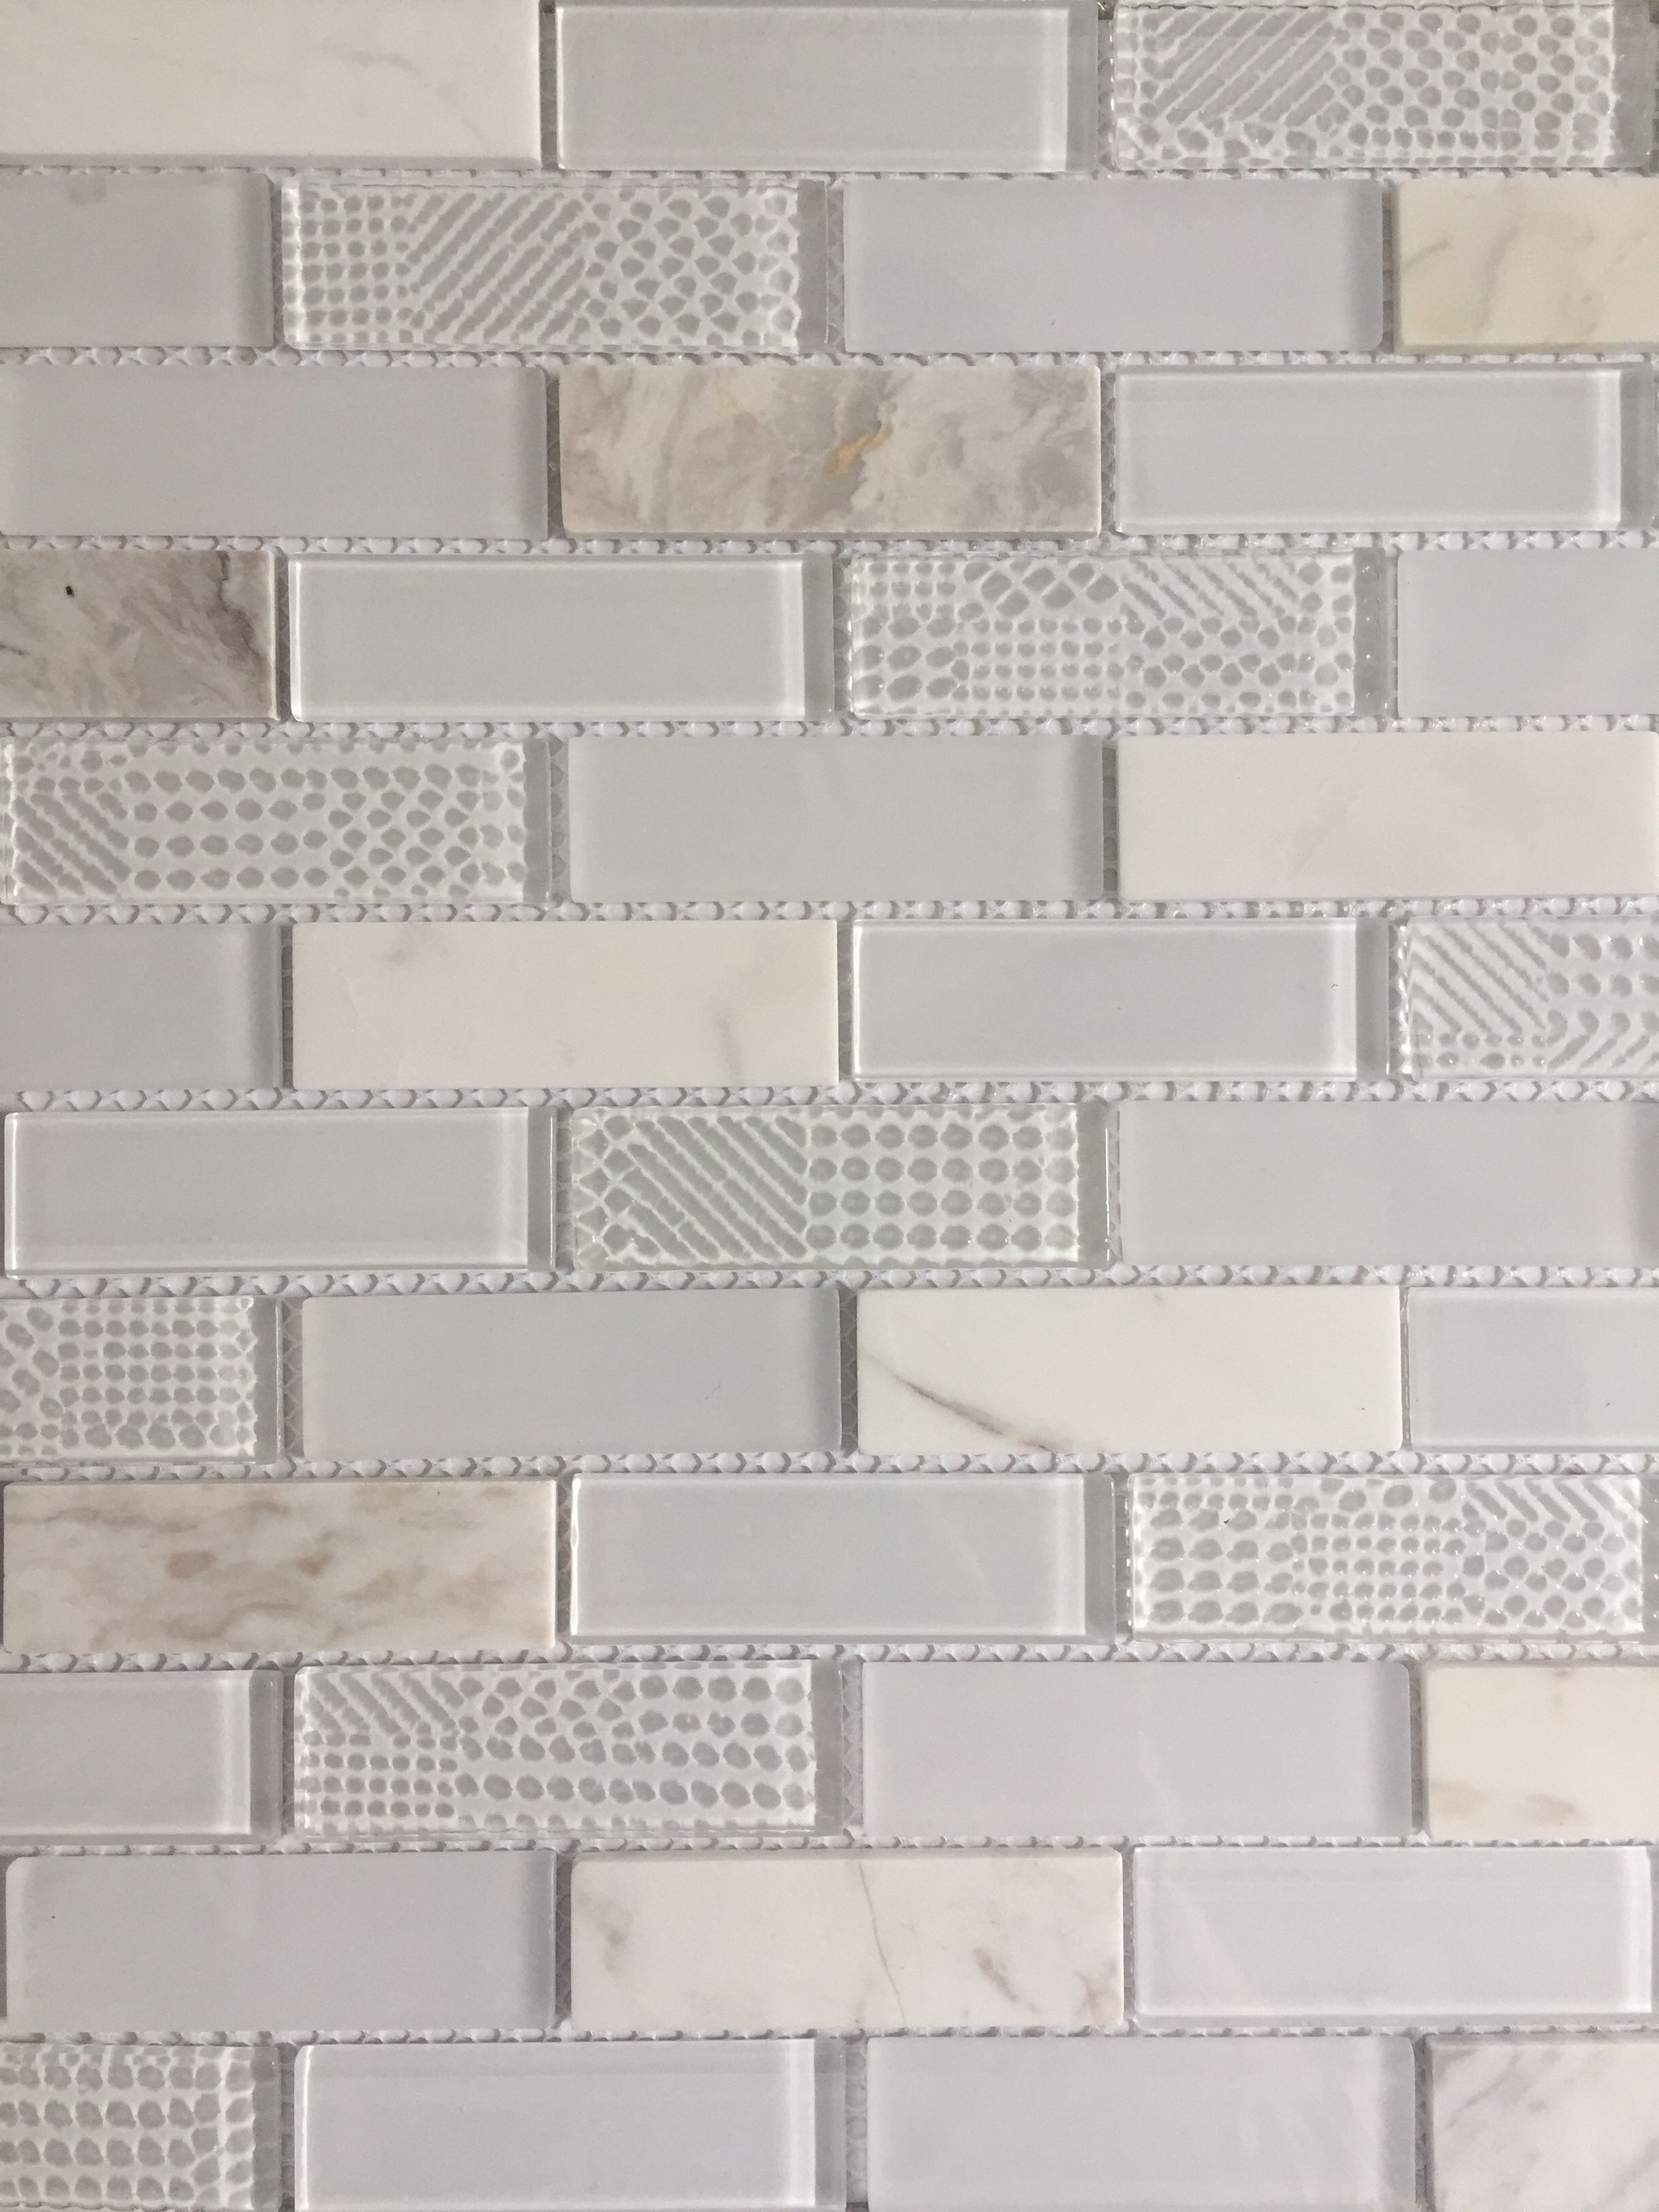 Avenzo Glacier Ice Mosaic Tile From Lowes Got For Downstairs Bath